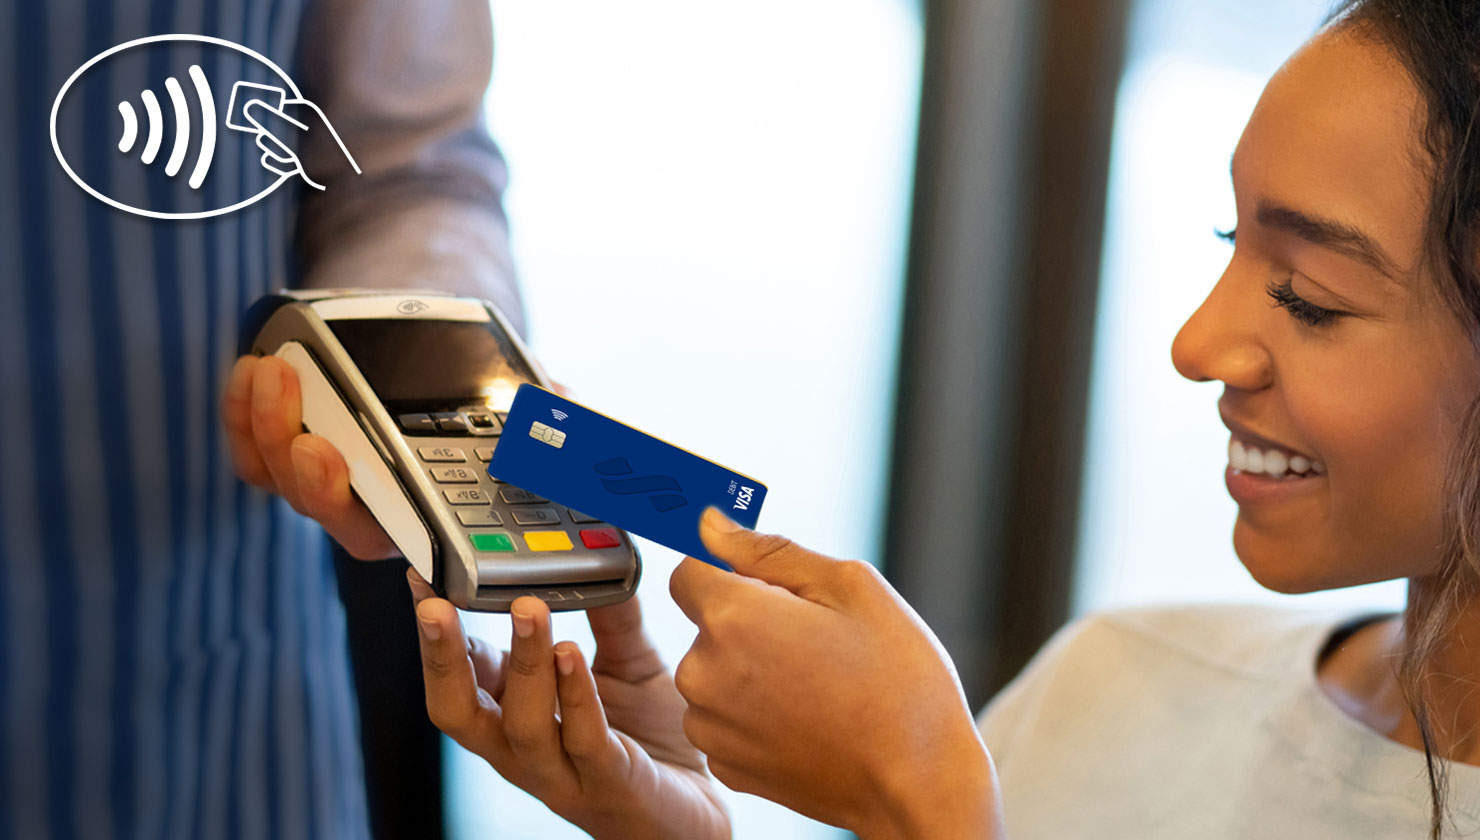 using a southstate contactless card at a store